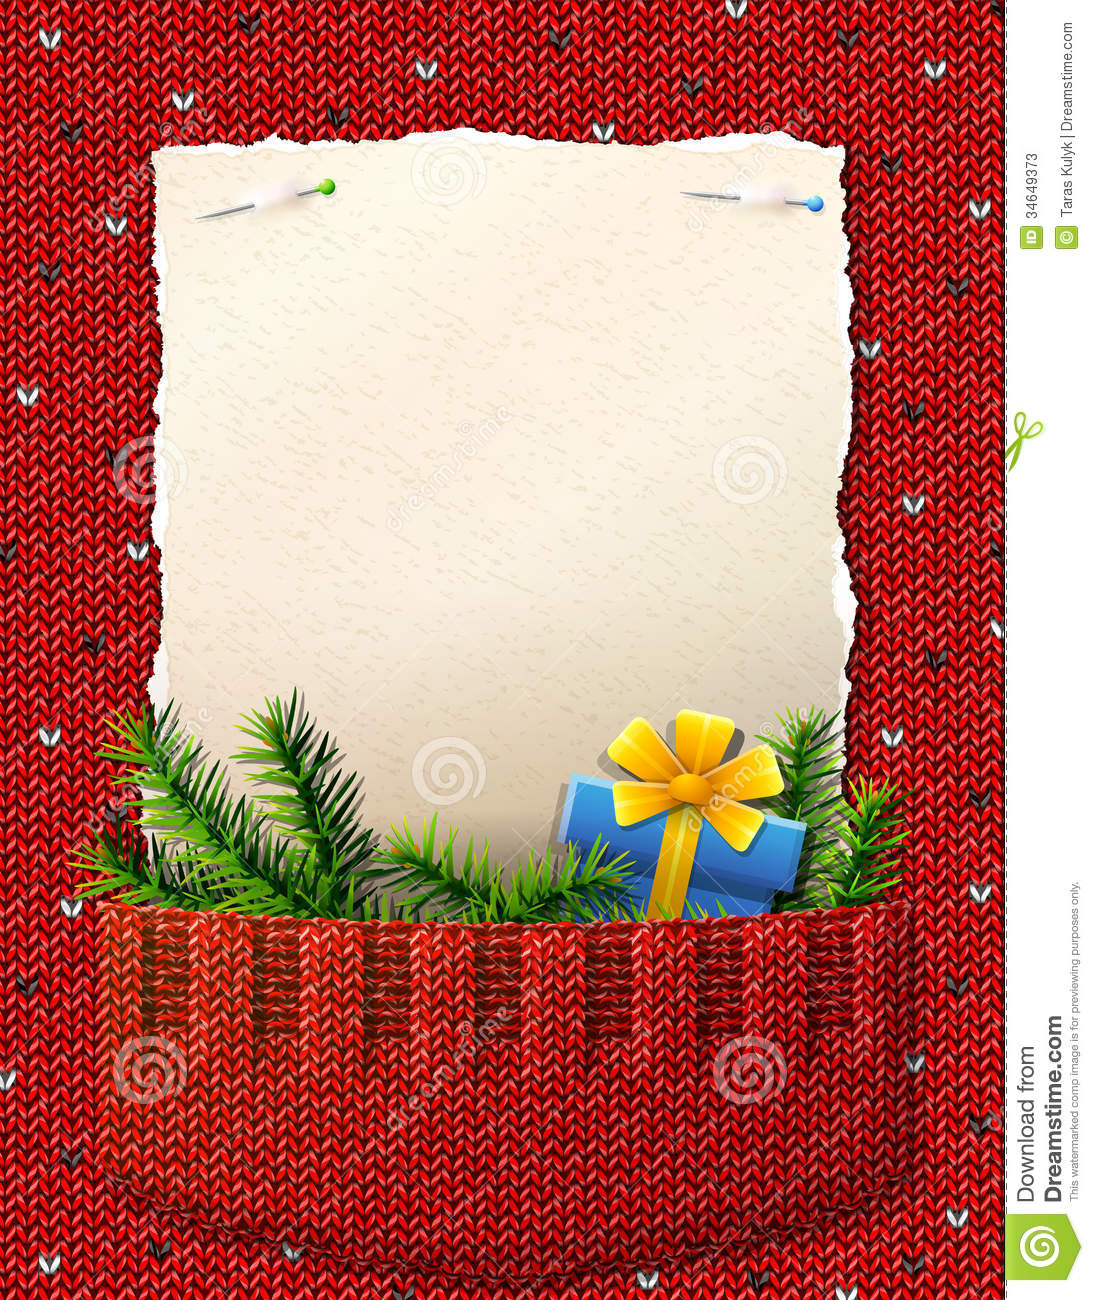 Paper For Christmas List In Knitted Pocket Stock Photos